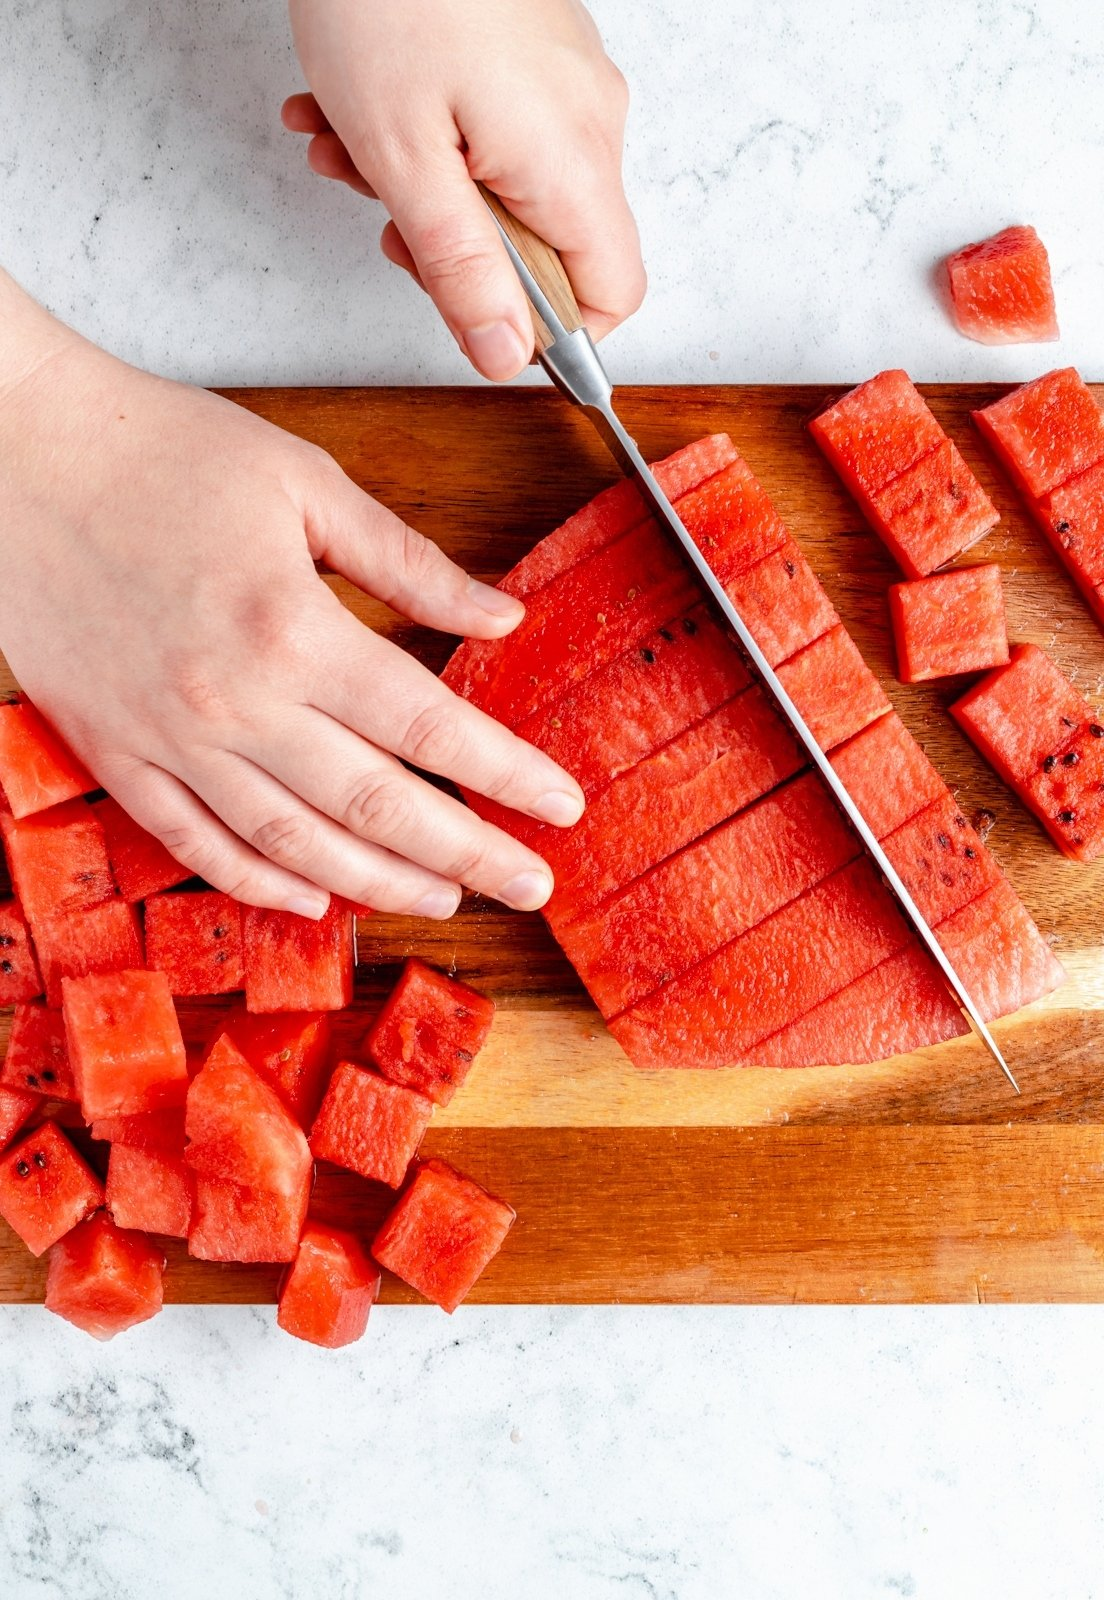 cutting a watermelon into cubes